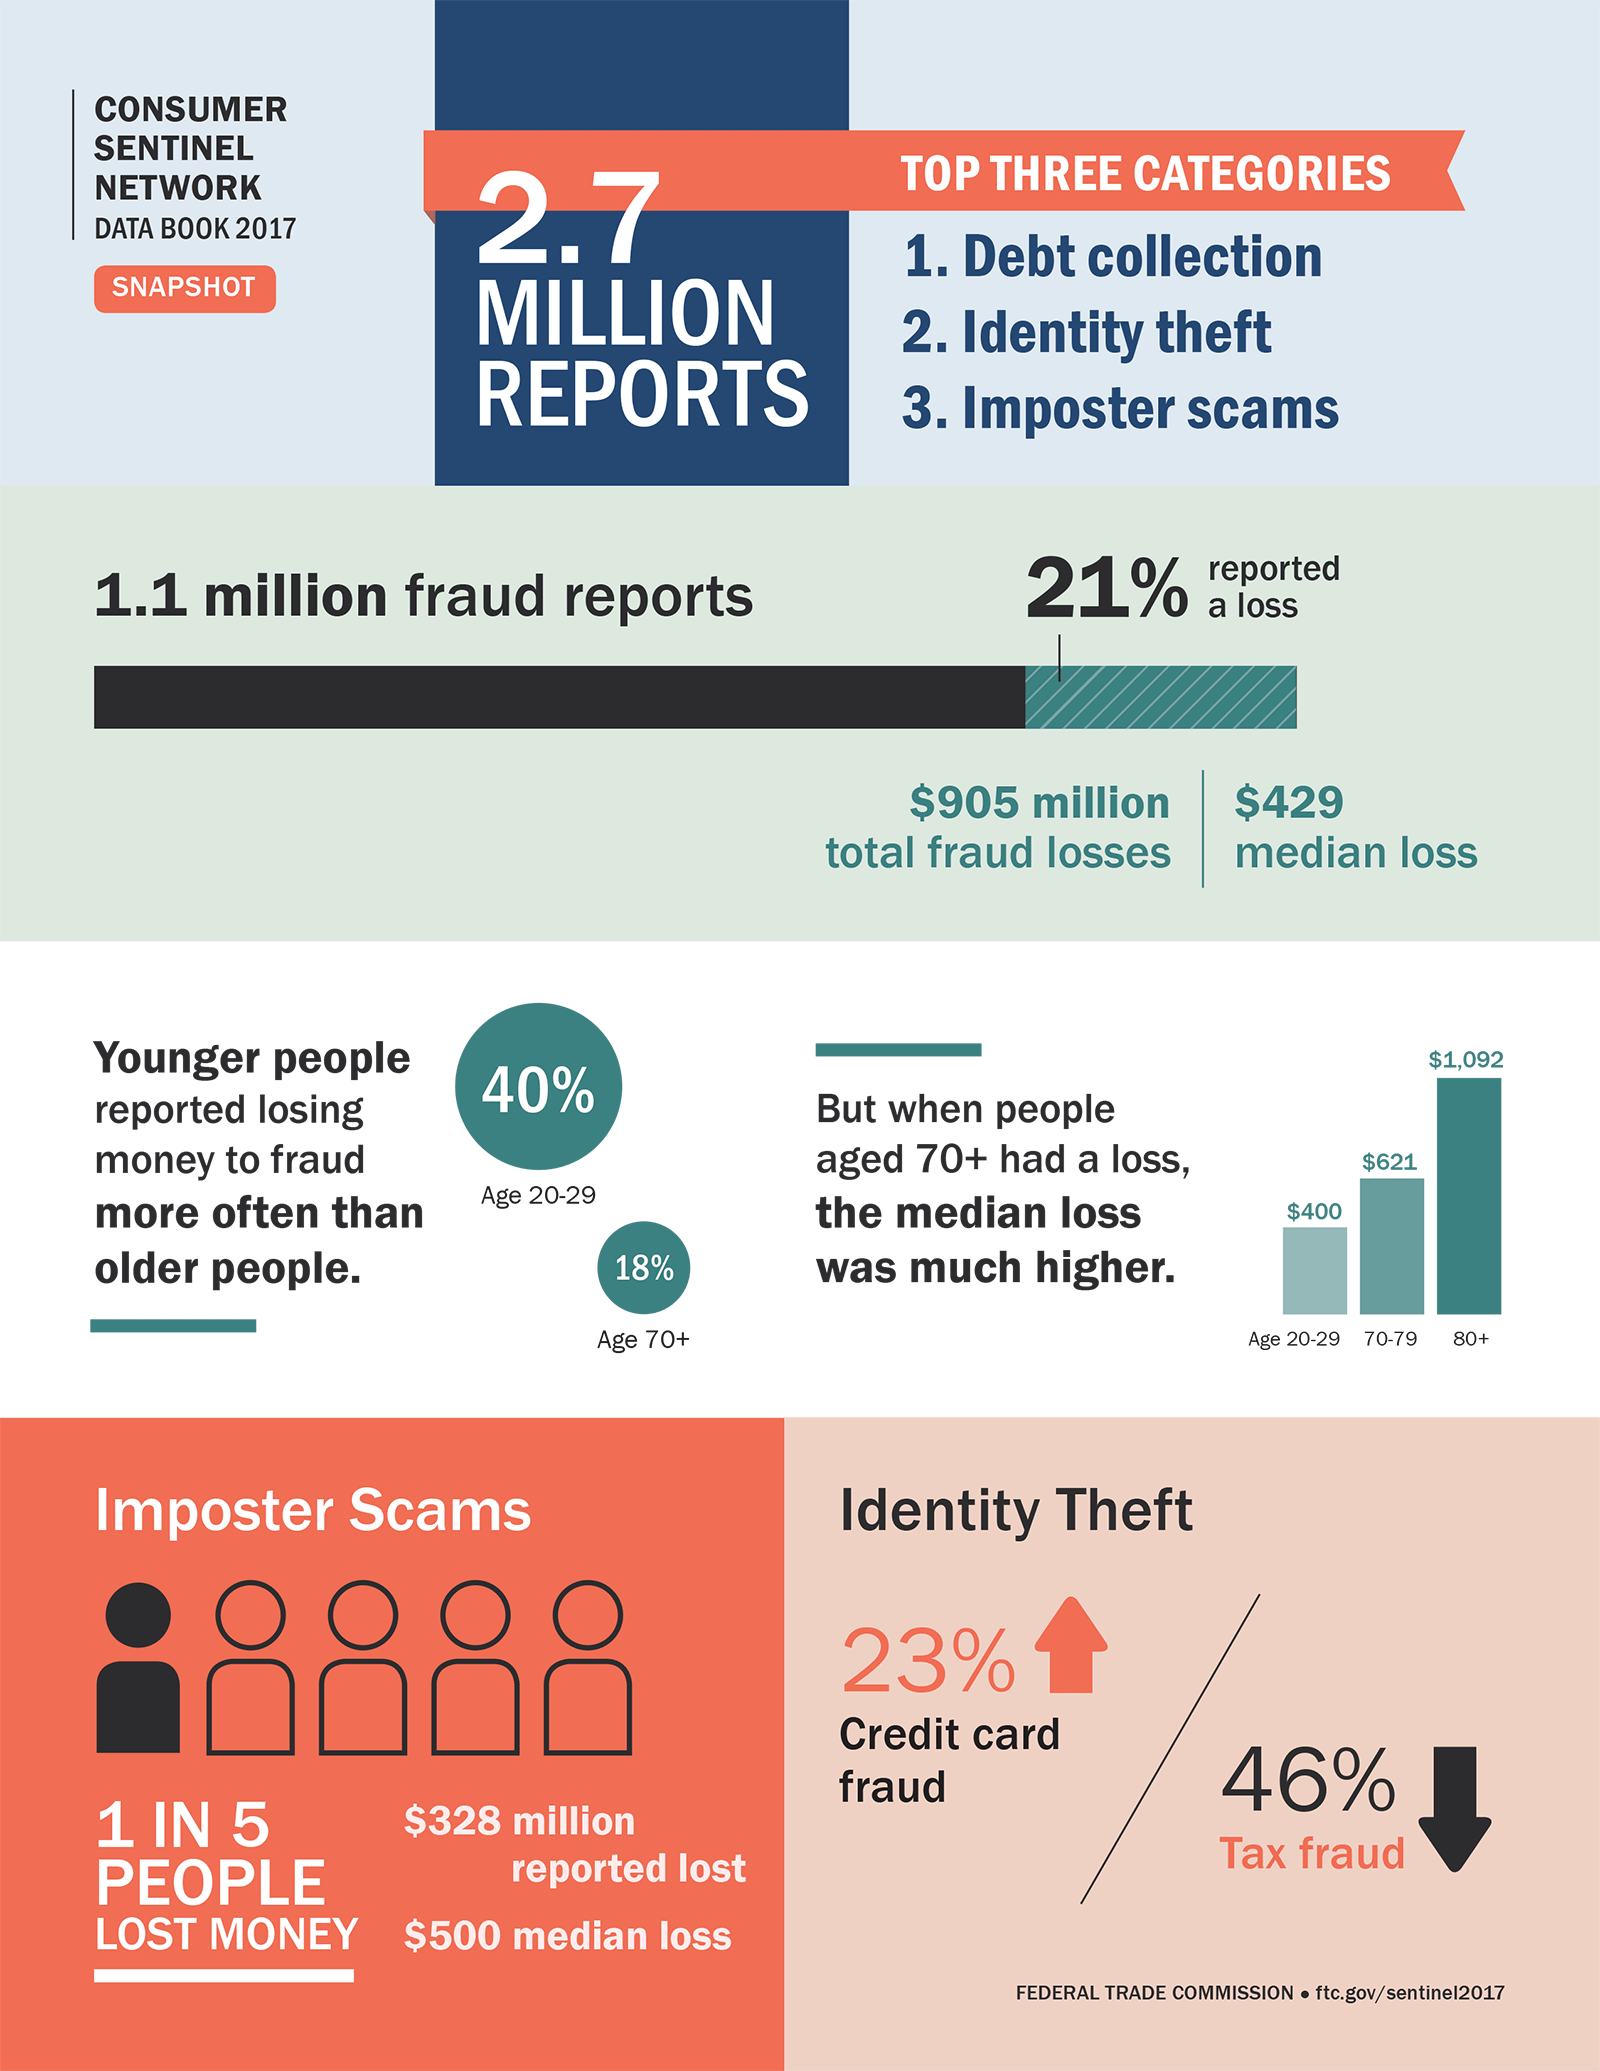 Consumer Sentinel Network Data Book 2017 Snapshot. 2.7 million reports. Top three categories: 1. Debt collection; 2. Identity theft; 3.	Imposter scams.